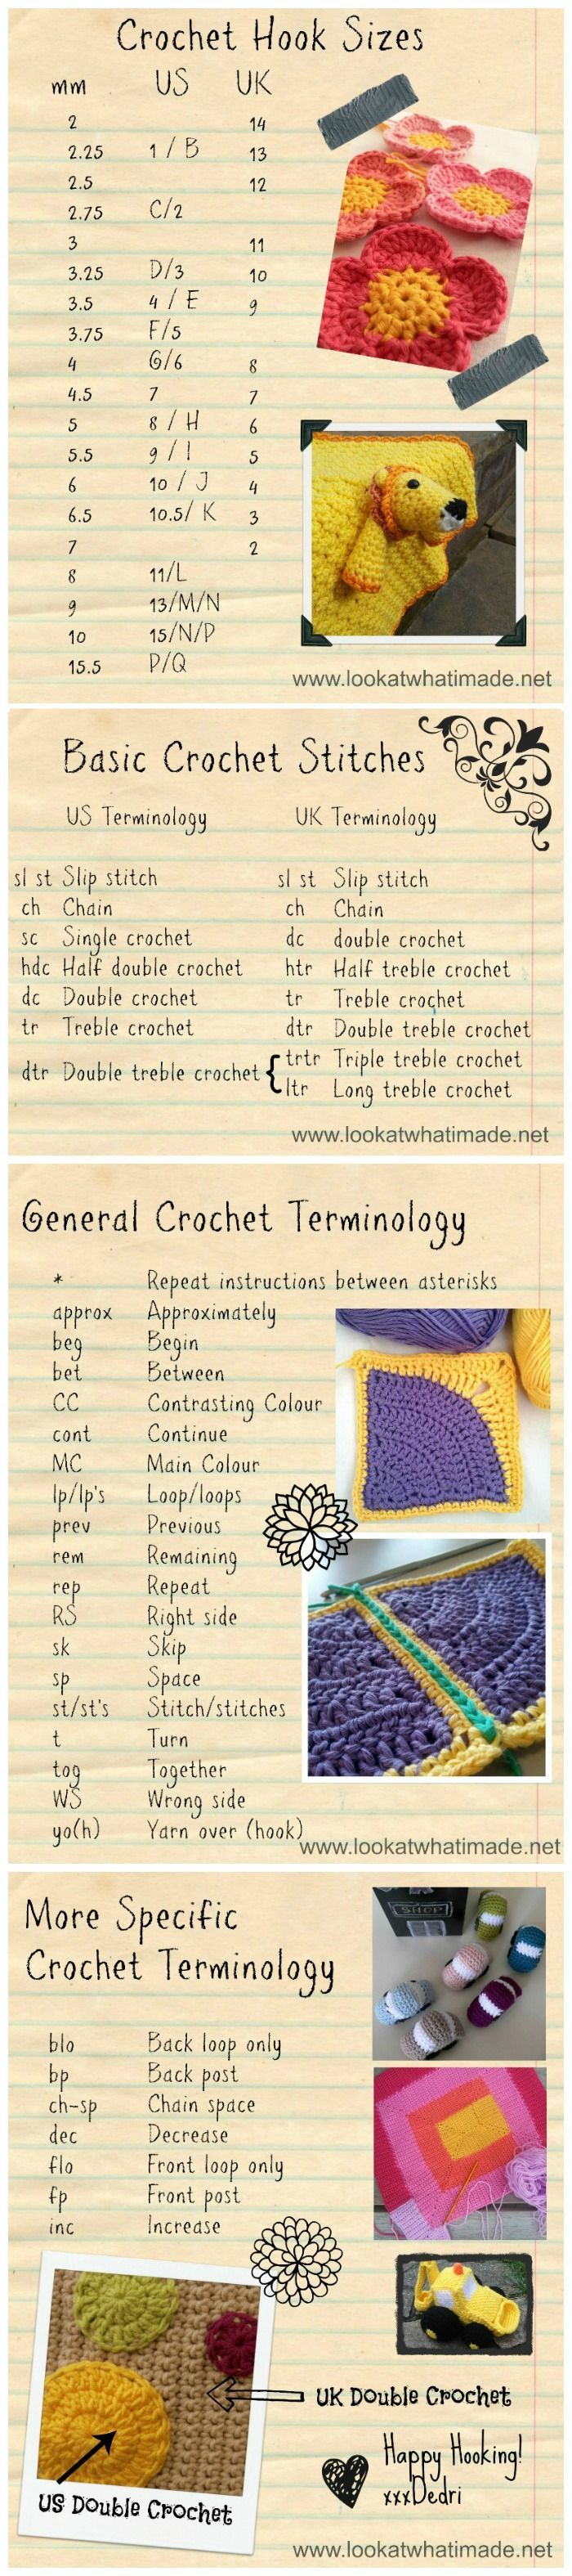 Crochet Hook Sizes (US, UK and metric) and Crochet Terminology (US and UK).